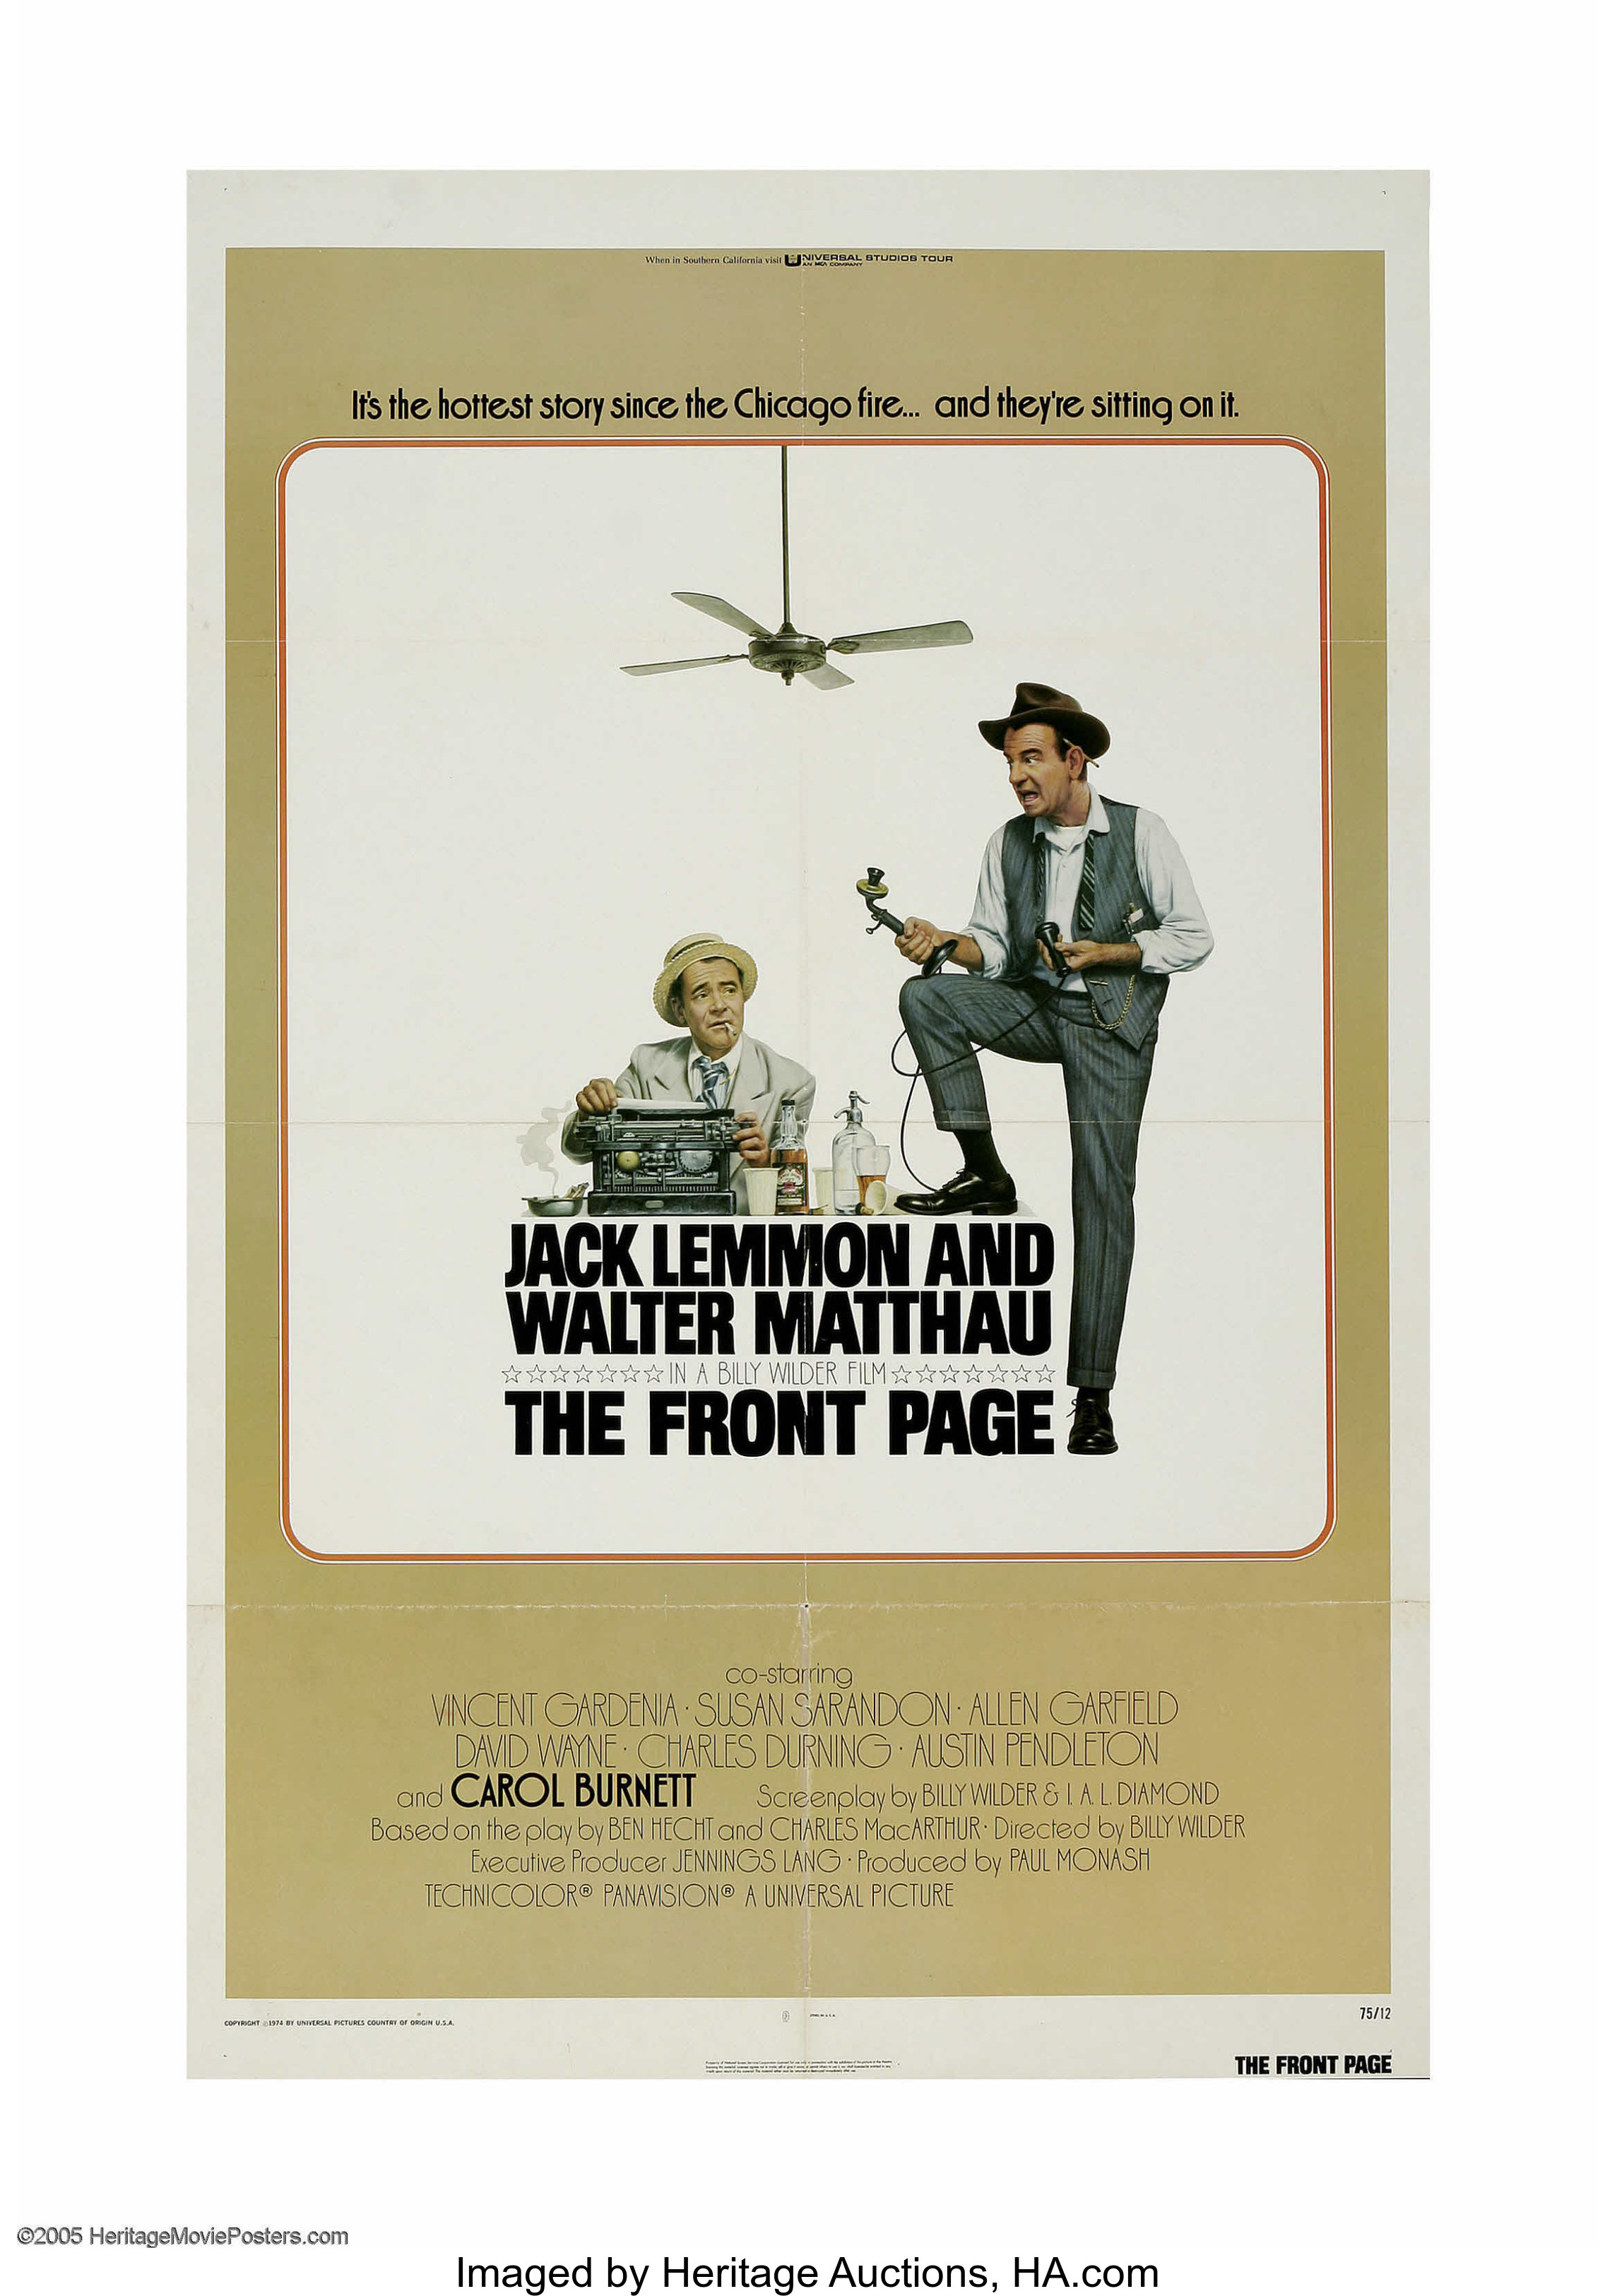 The front page Walter Mathau Jack Lemmon movie poster